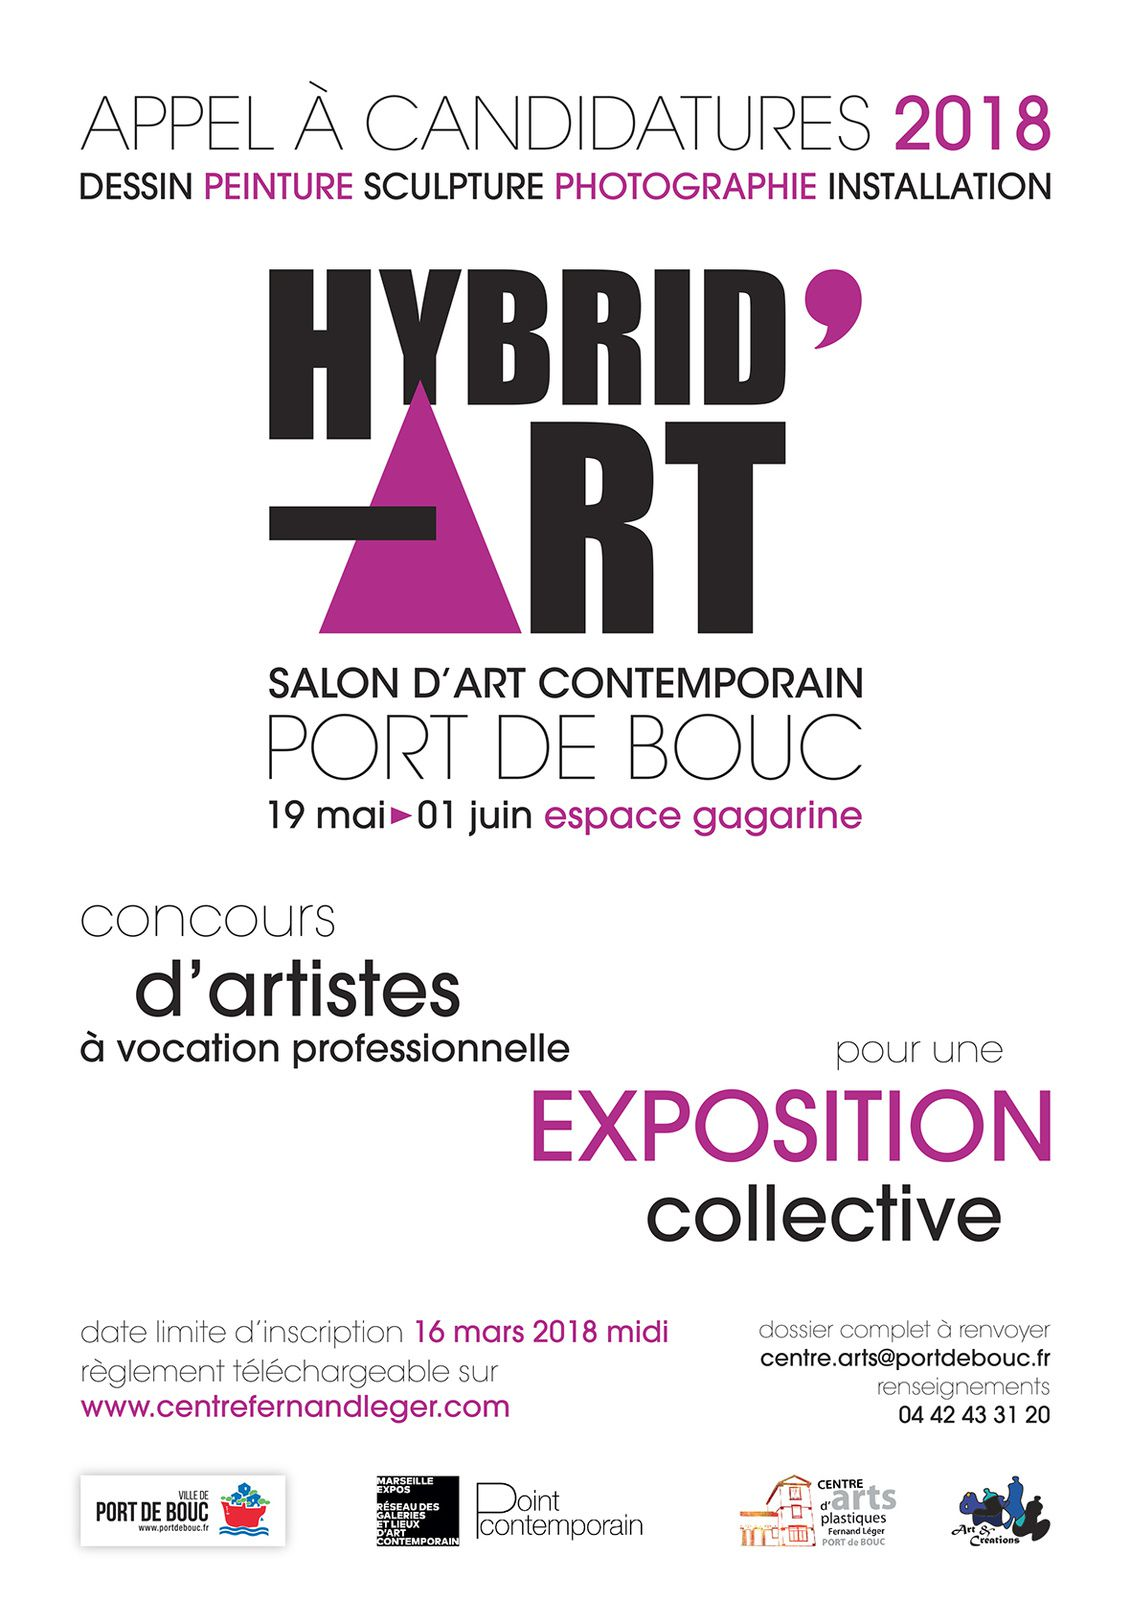 Appel à candidatures 2018 - HYBRID'ART Salon d'art contemporain